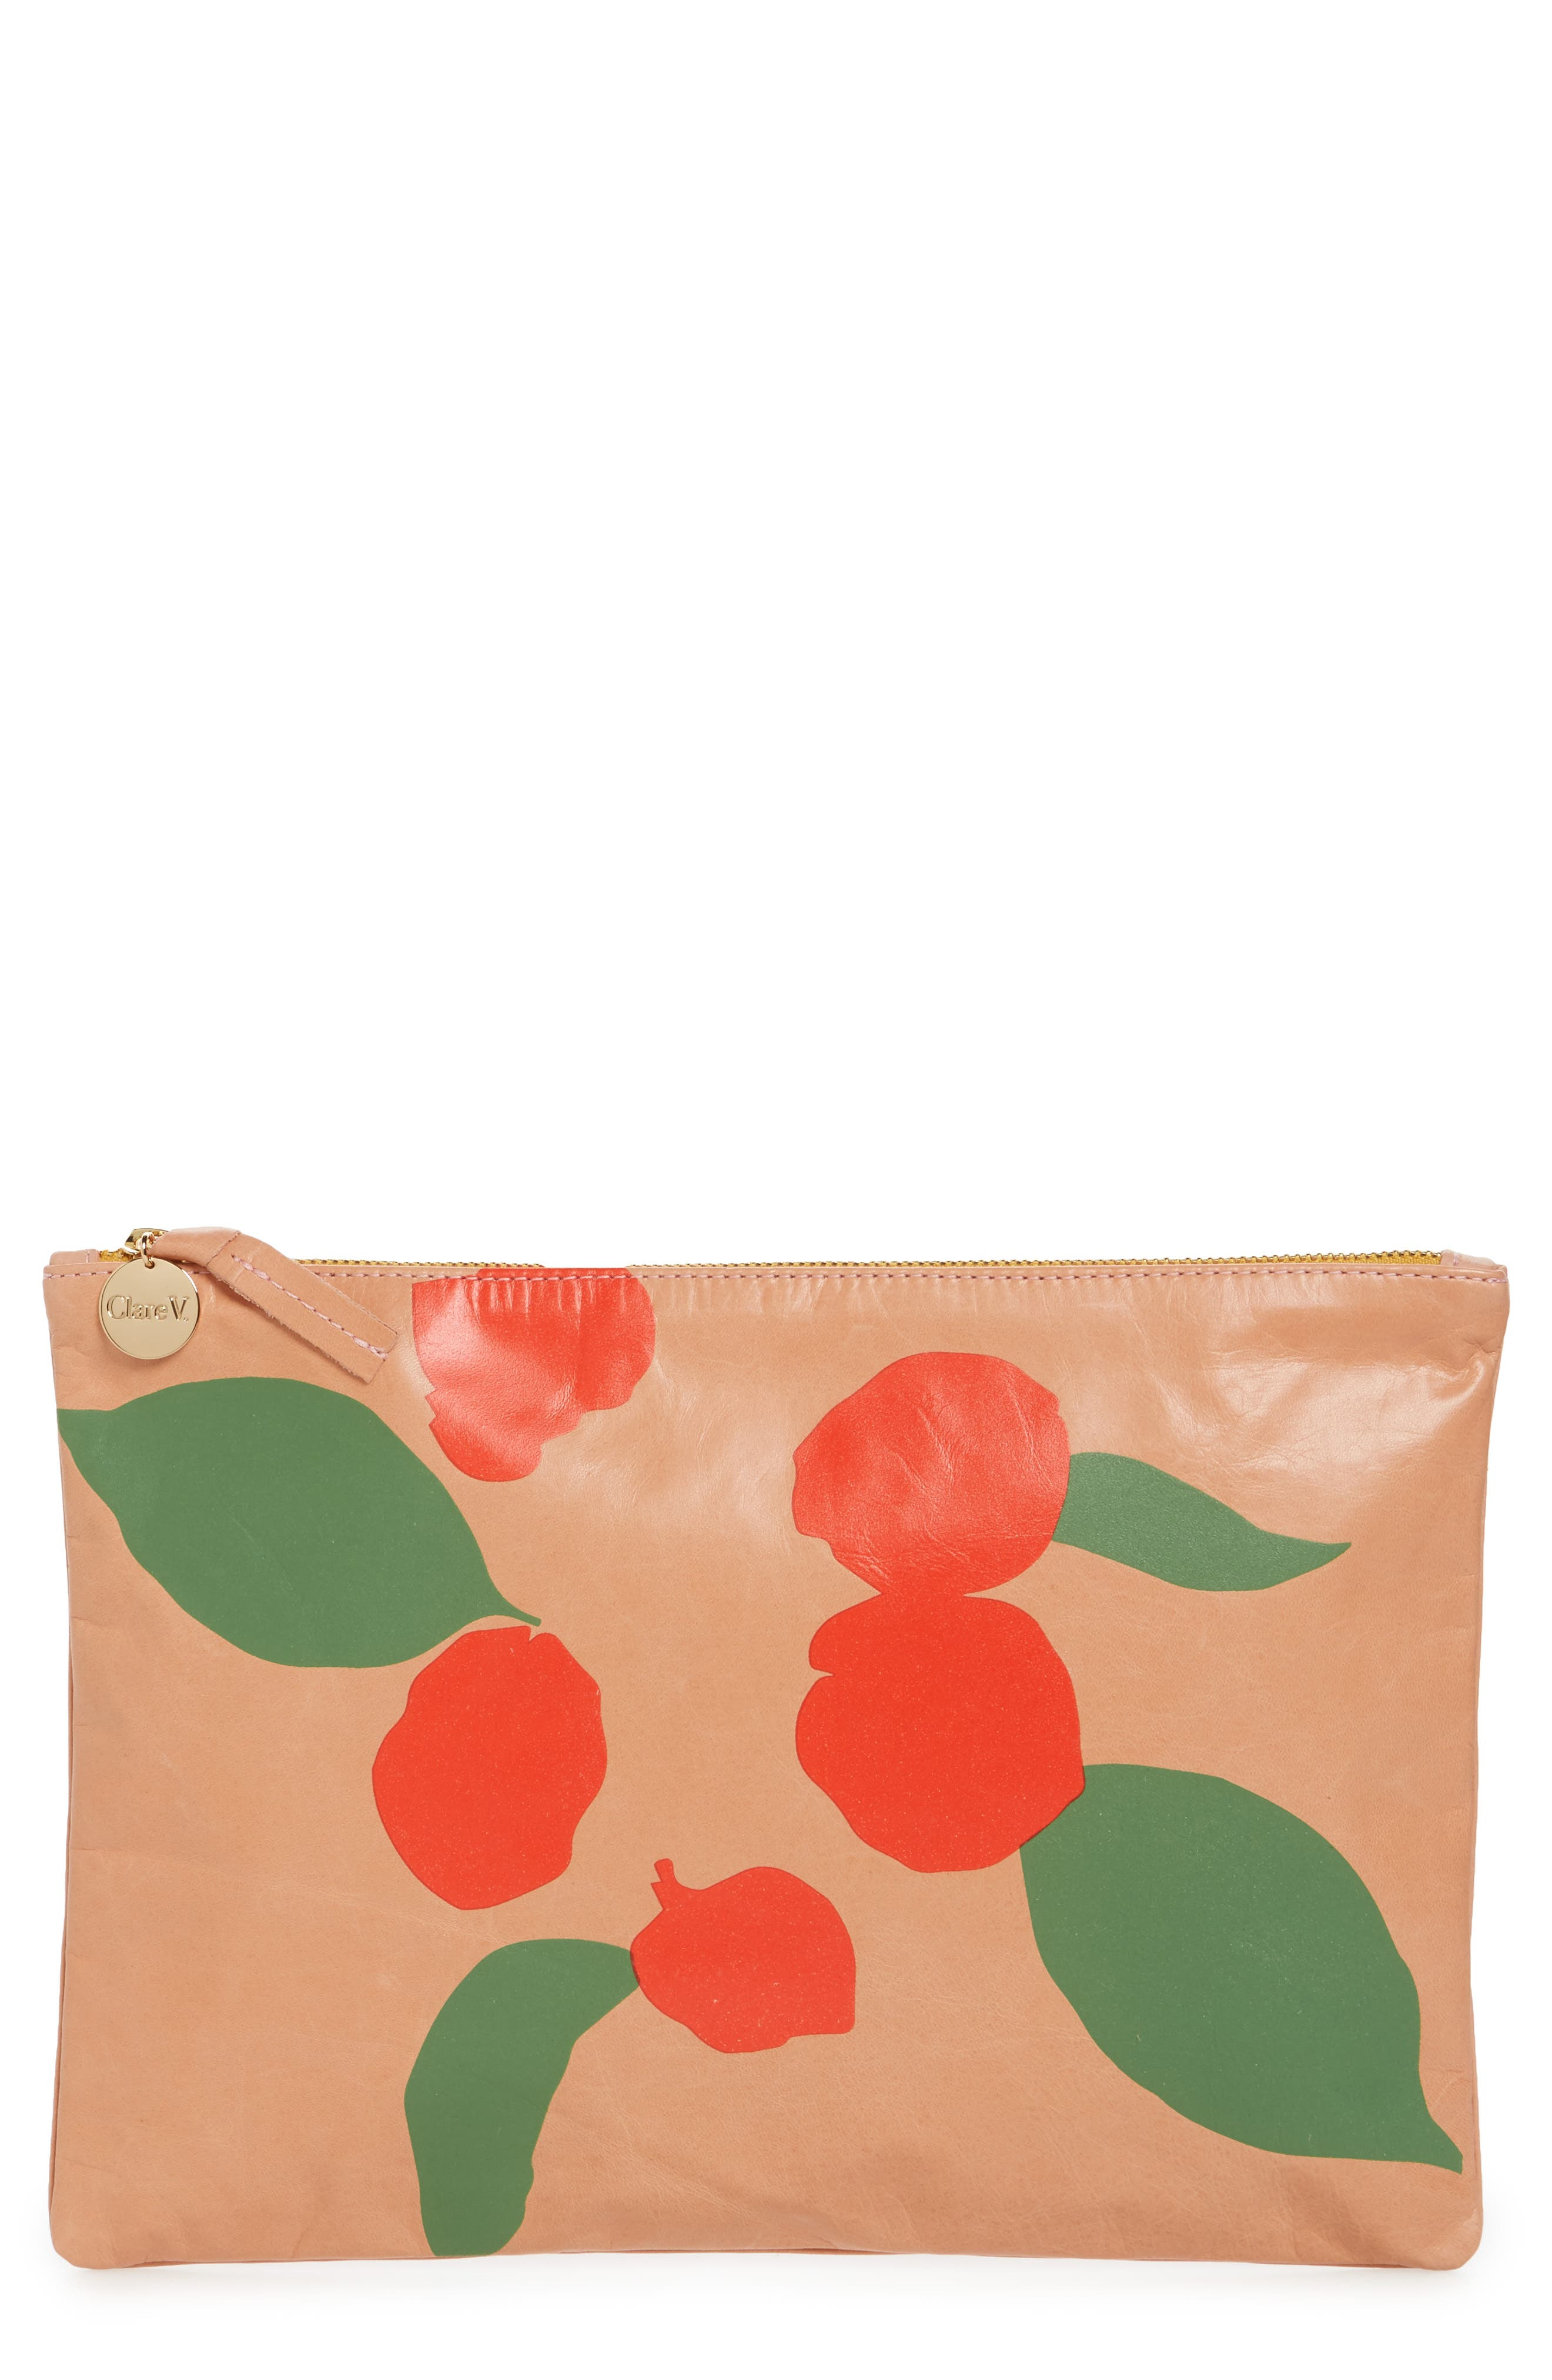 Bougainvillea Leather Clutch,                             Main thumbnail 1, color,                             Salmon New Look